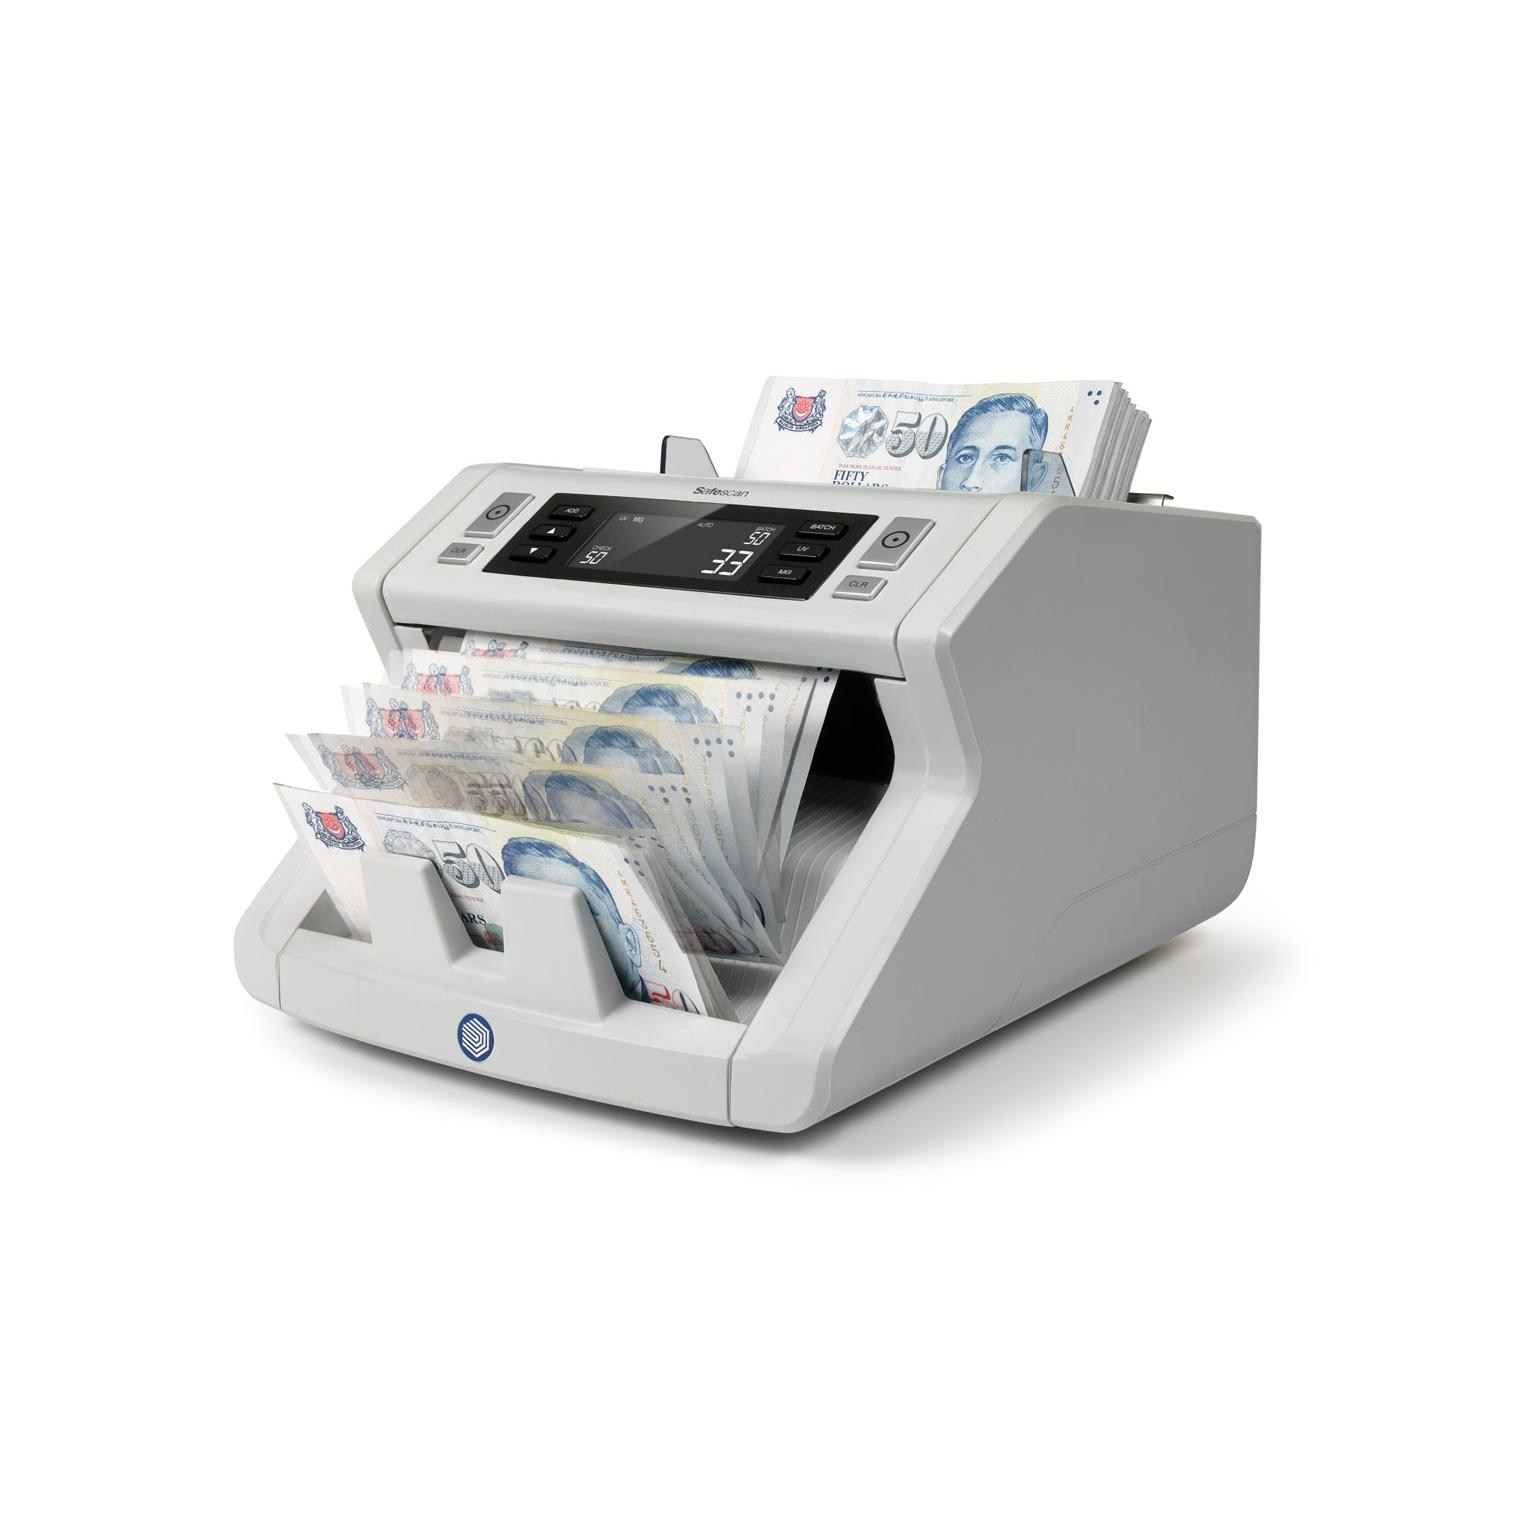 Safescan 2250 Automatic Banknote Counter